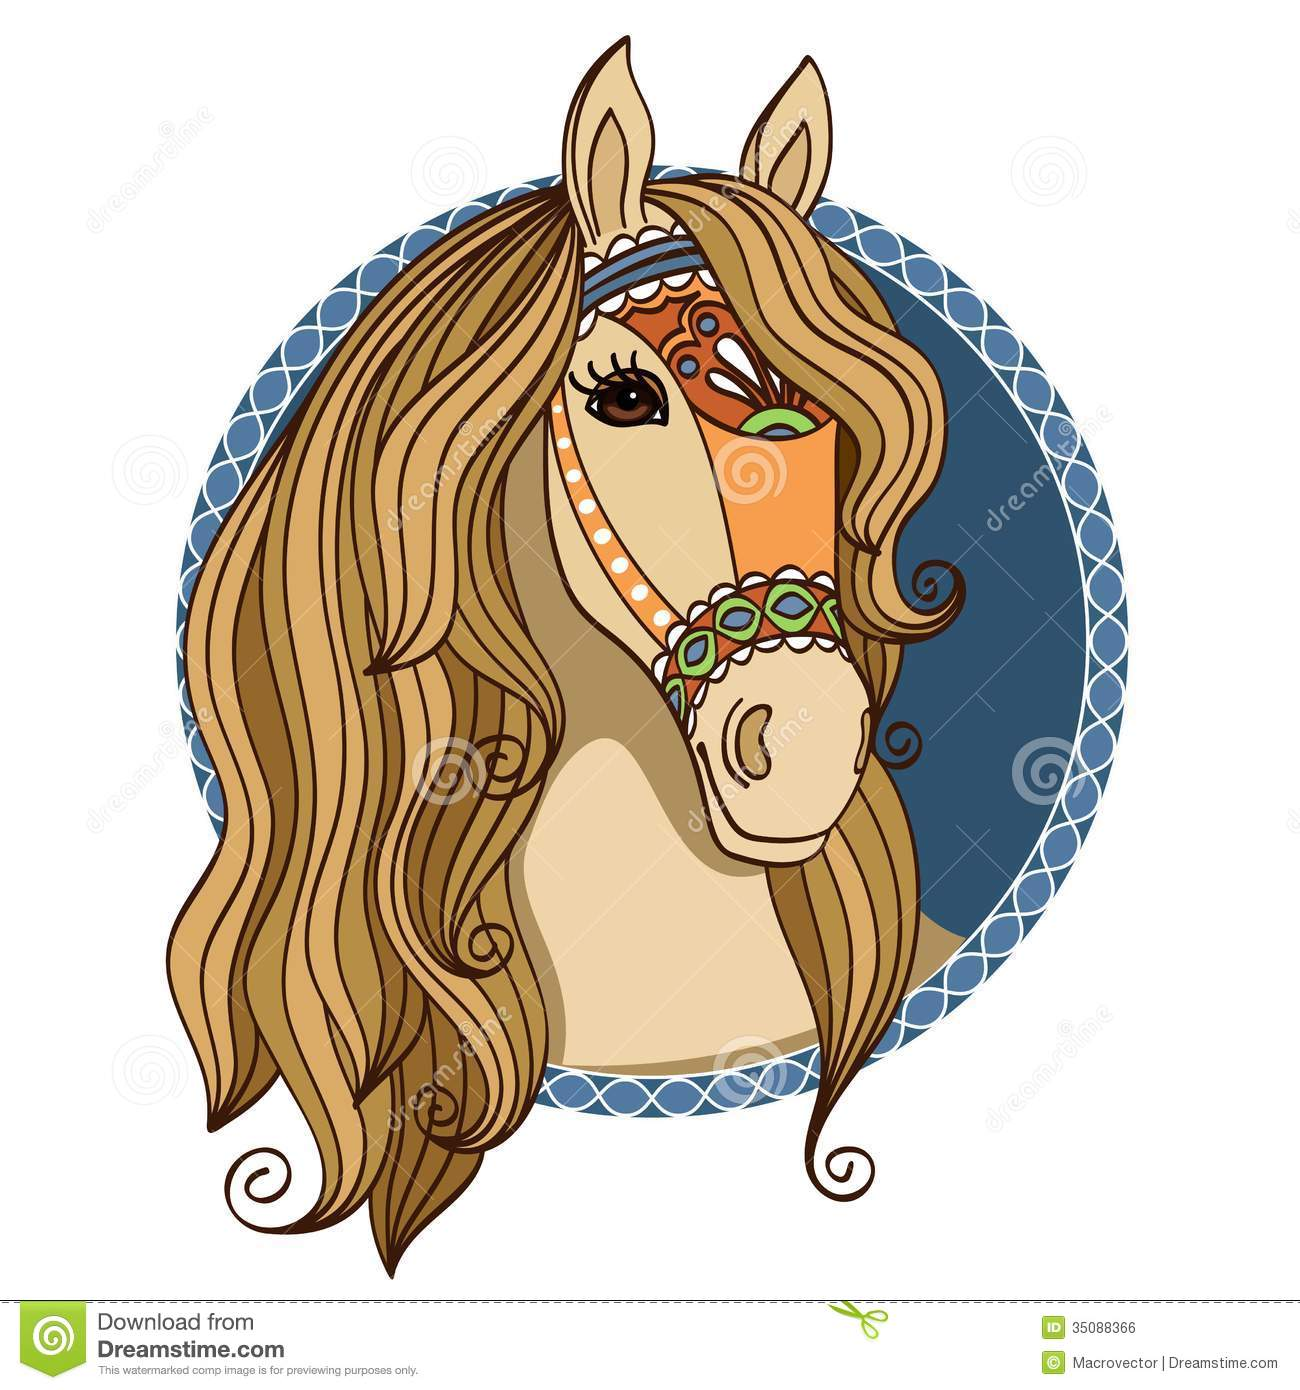 hungry horse catholic singles Ellen mongan is a catholic writer and speaker who has been married 44 years to deacon pat mongan they have 7 children and 12 grandchildren ellen is a hosts of wow radio podcasts.